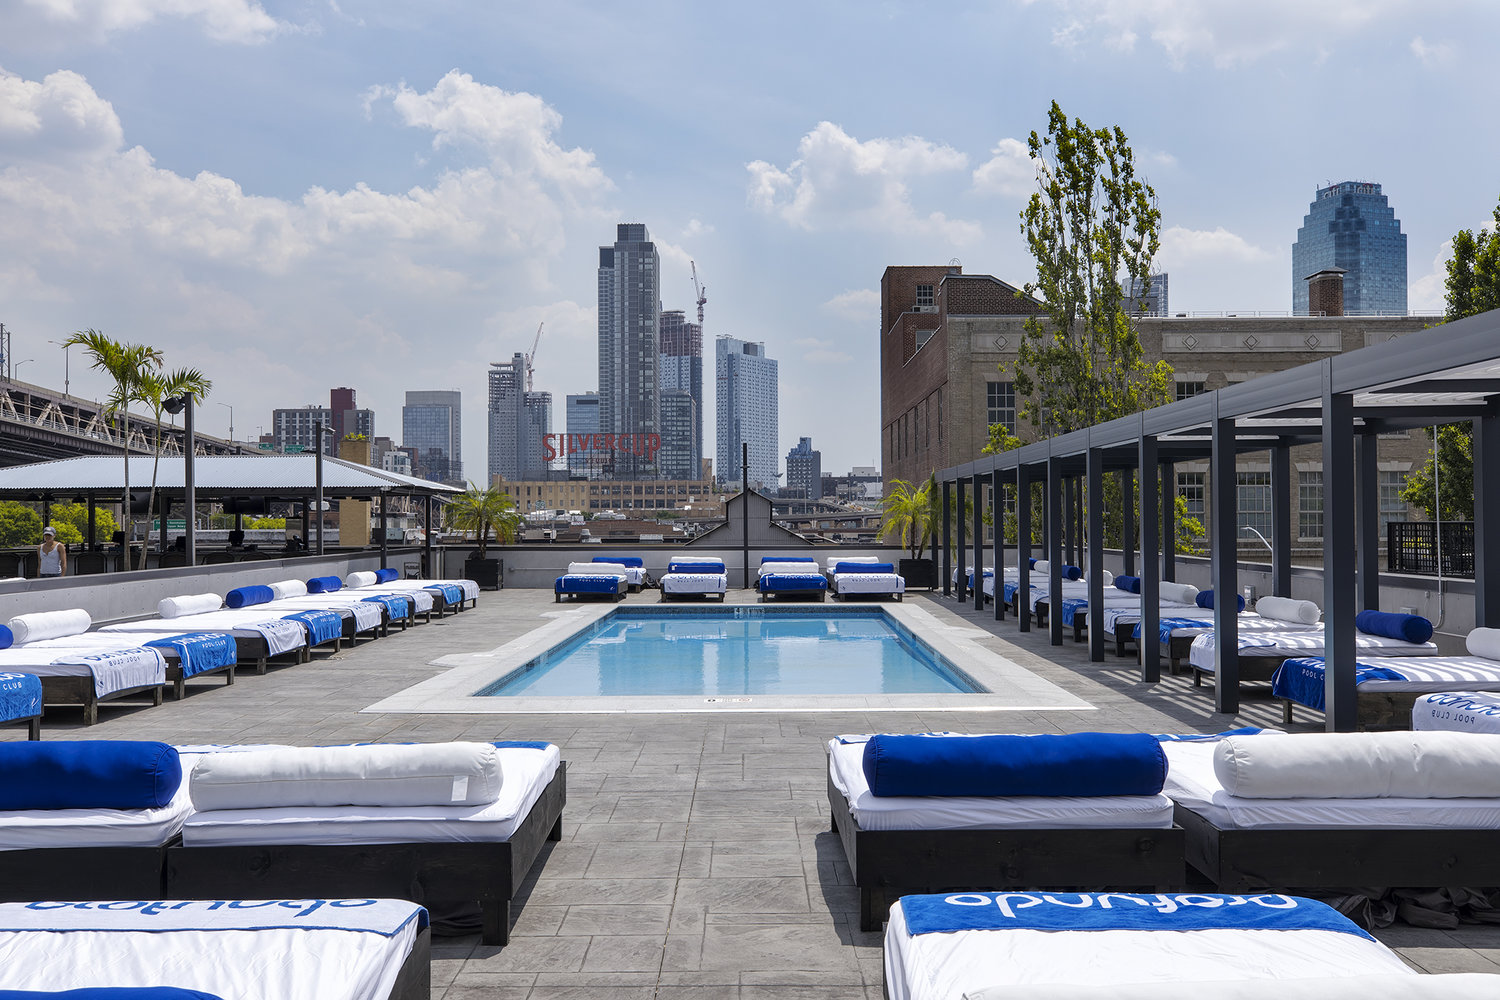 profundo-pool-ravel-hotel-lic-queens